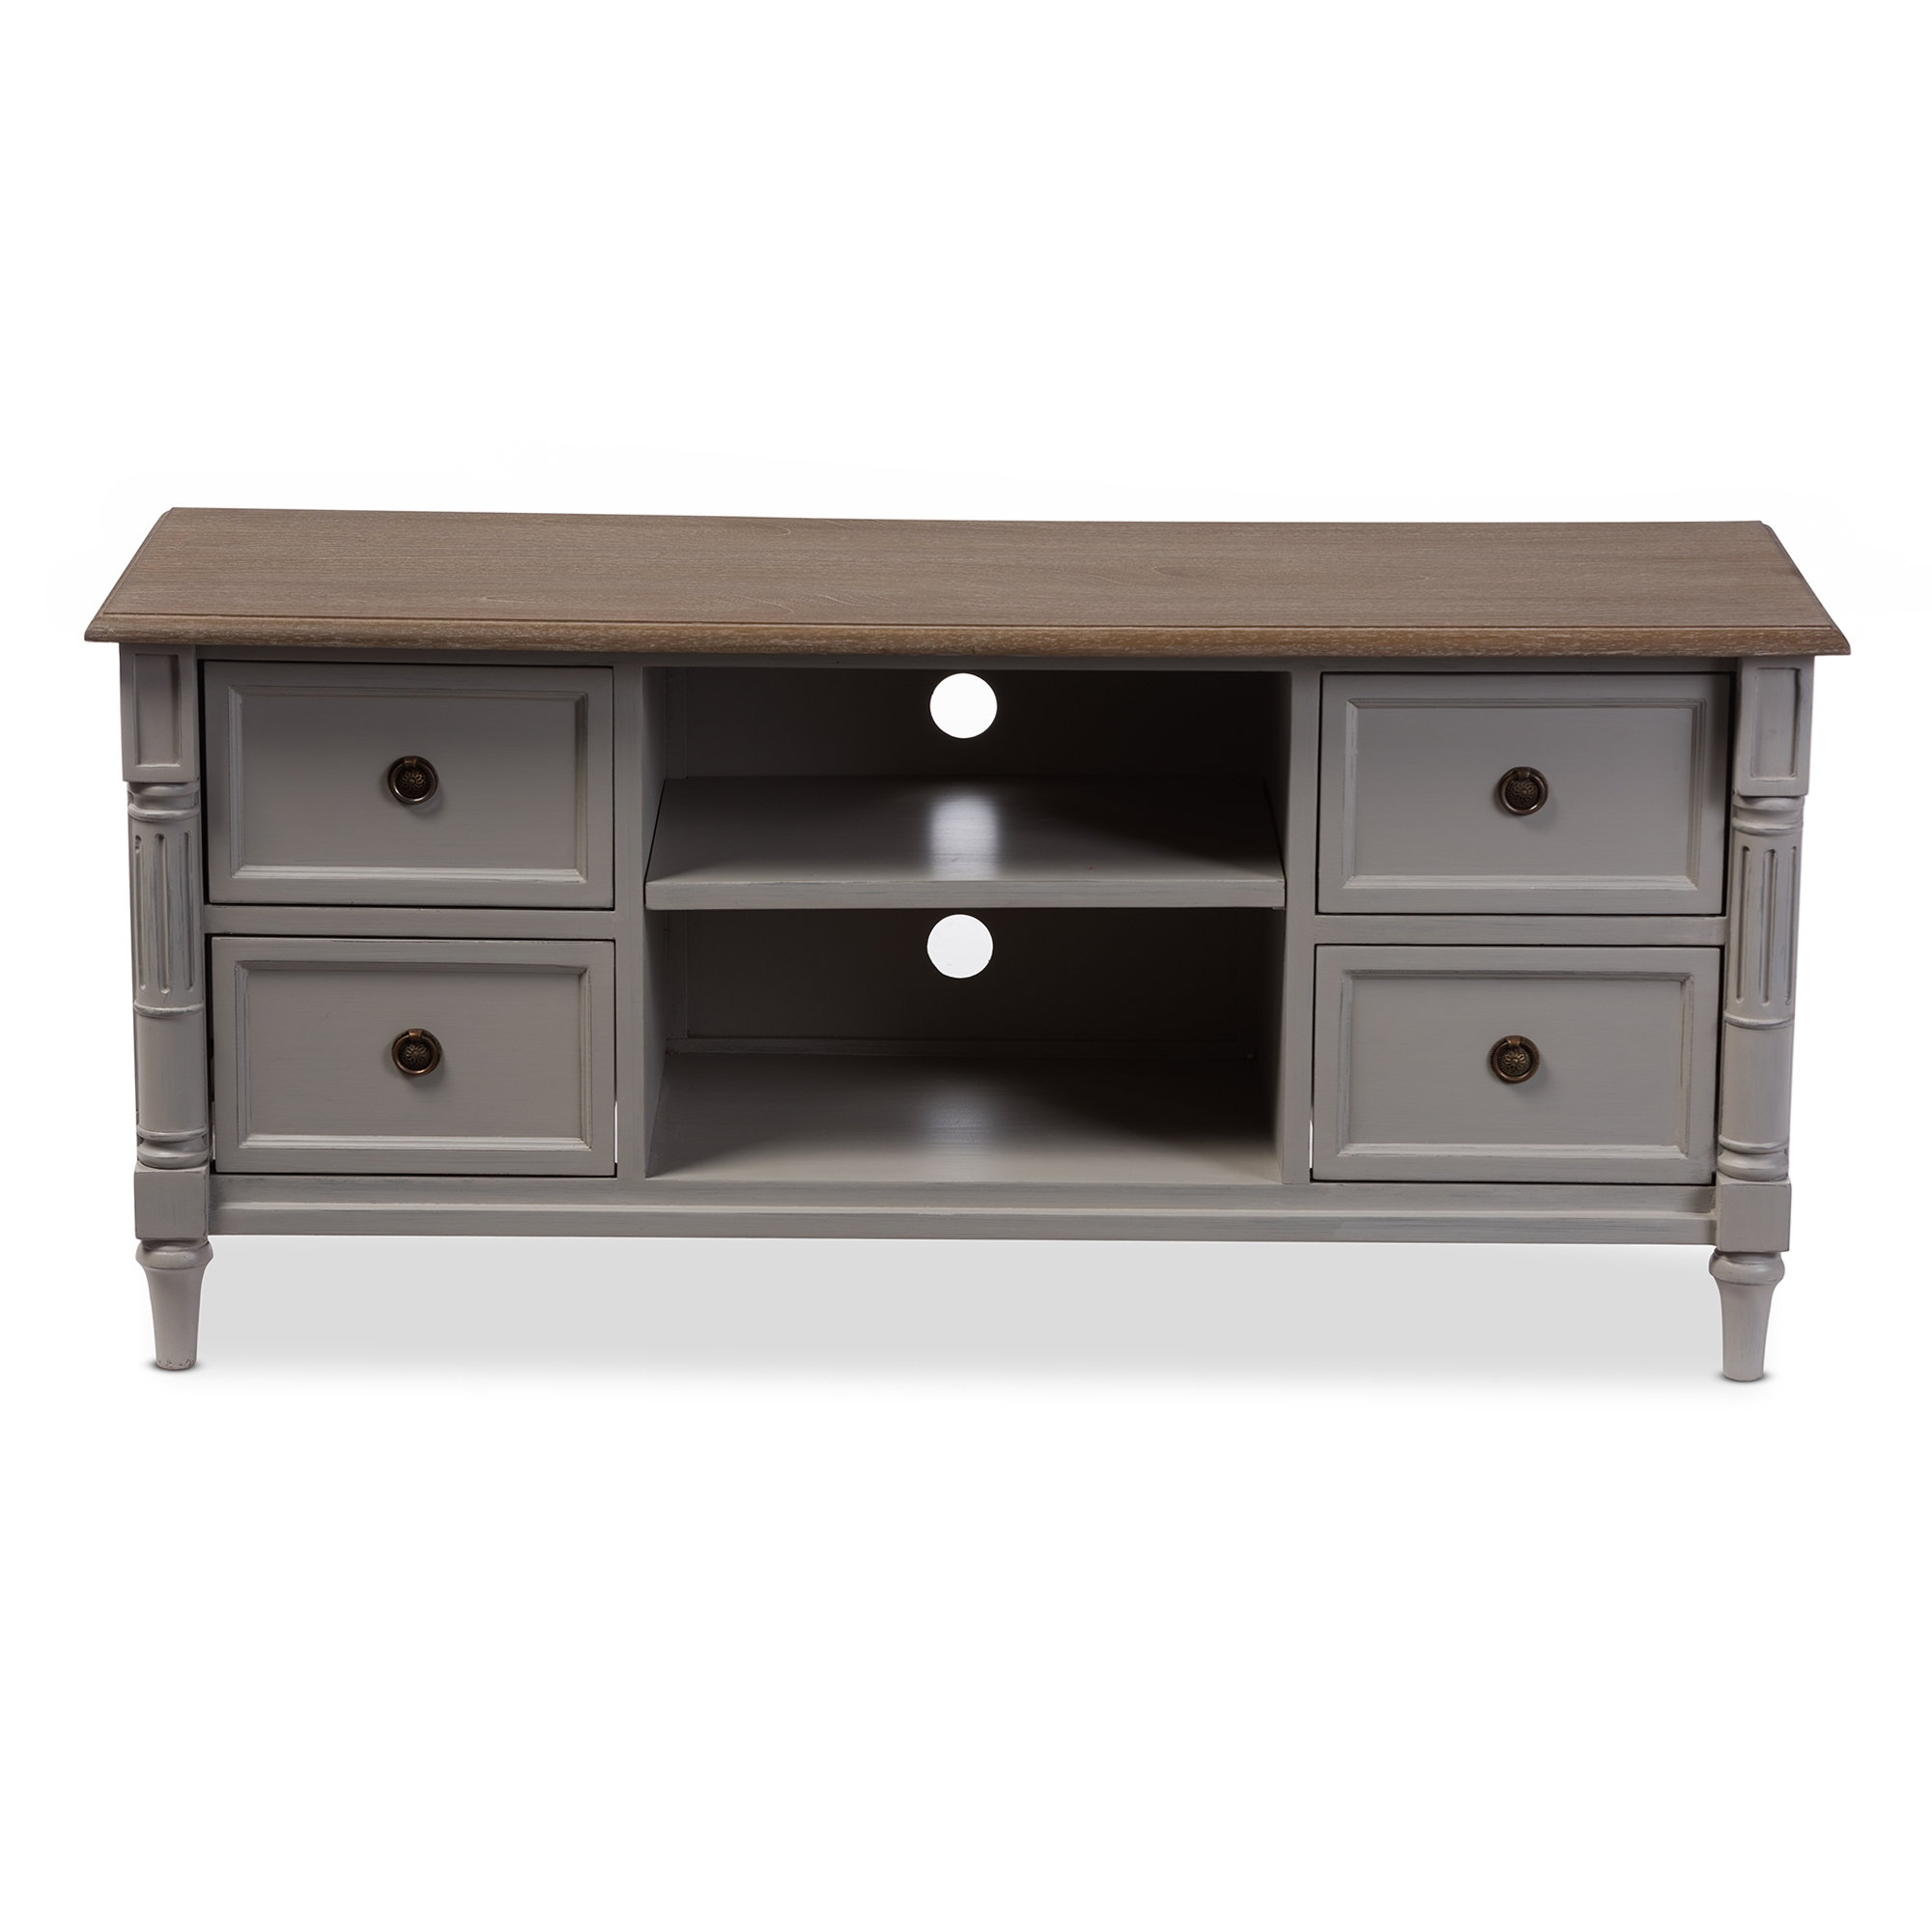 Baxton Studio Edouard French Provincial Style White Wash Distressed Two Tone 4 Drawer TV Cabinet